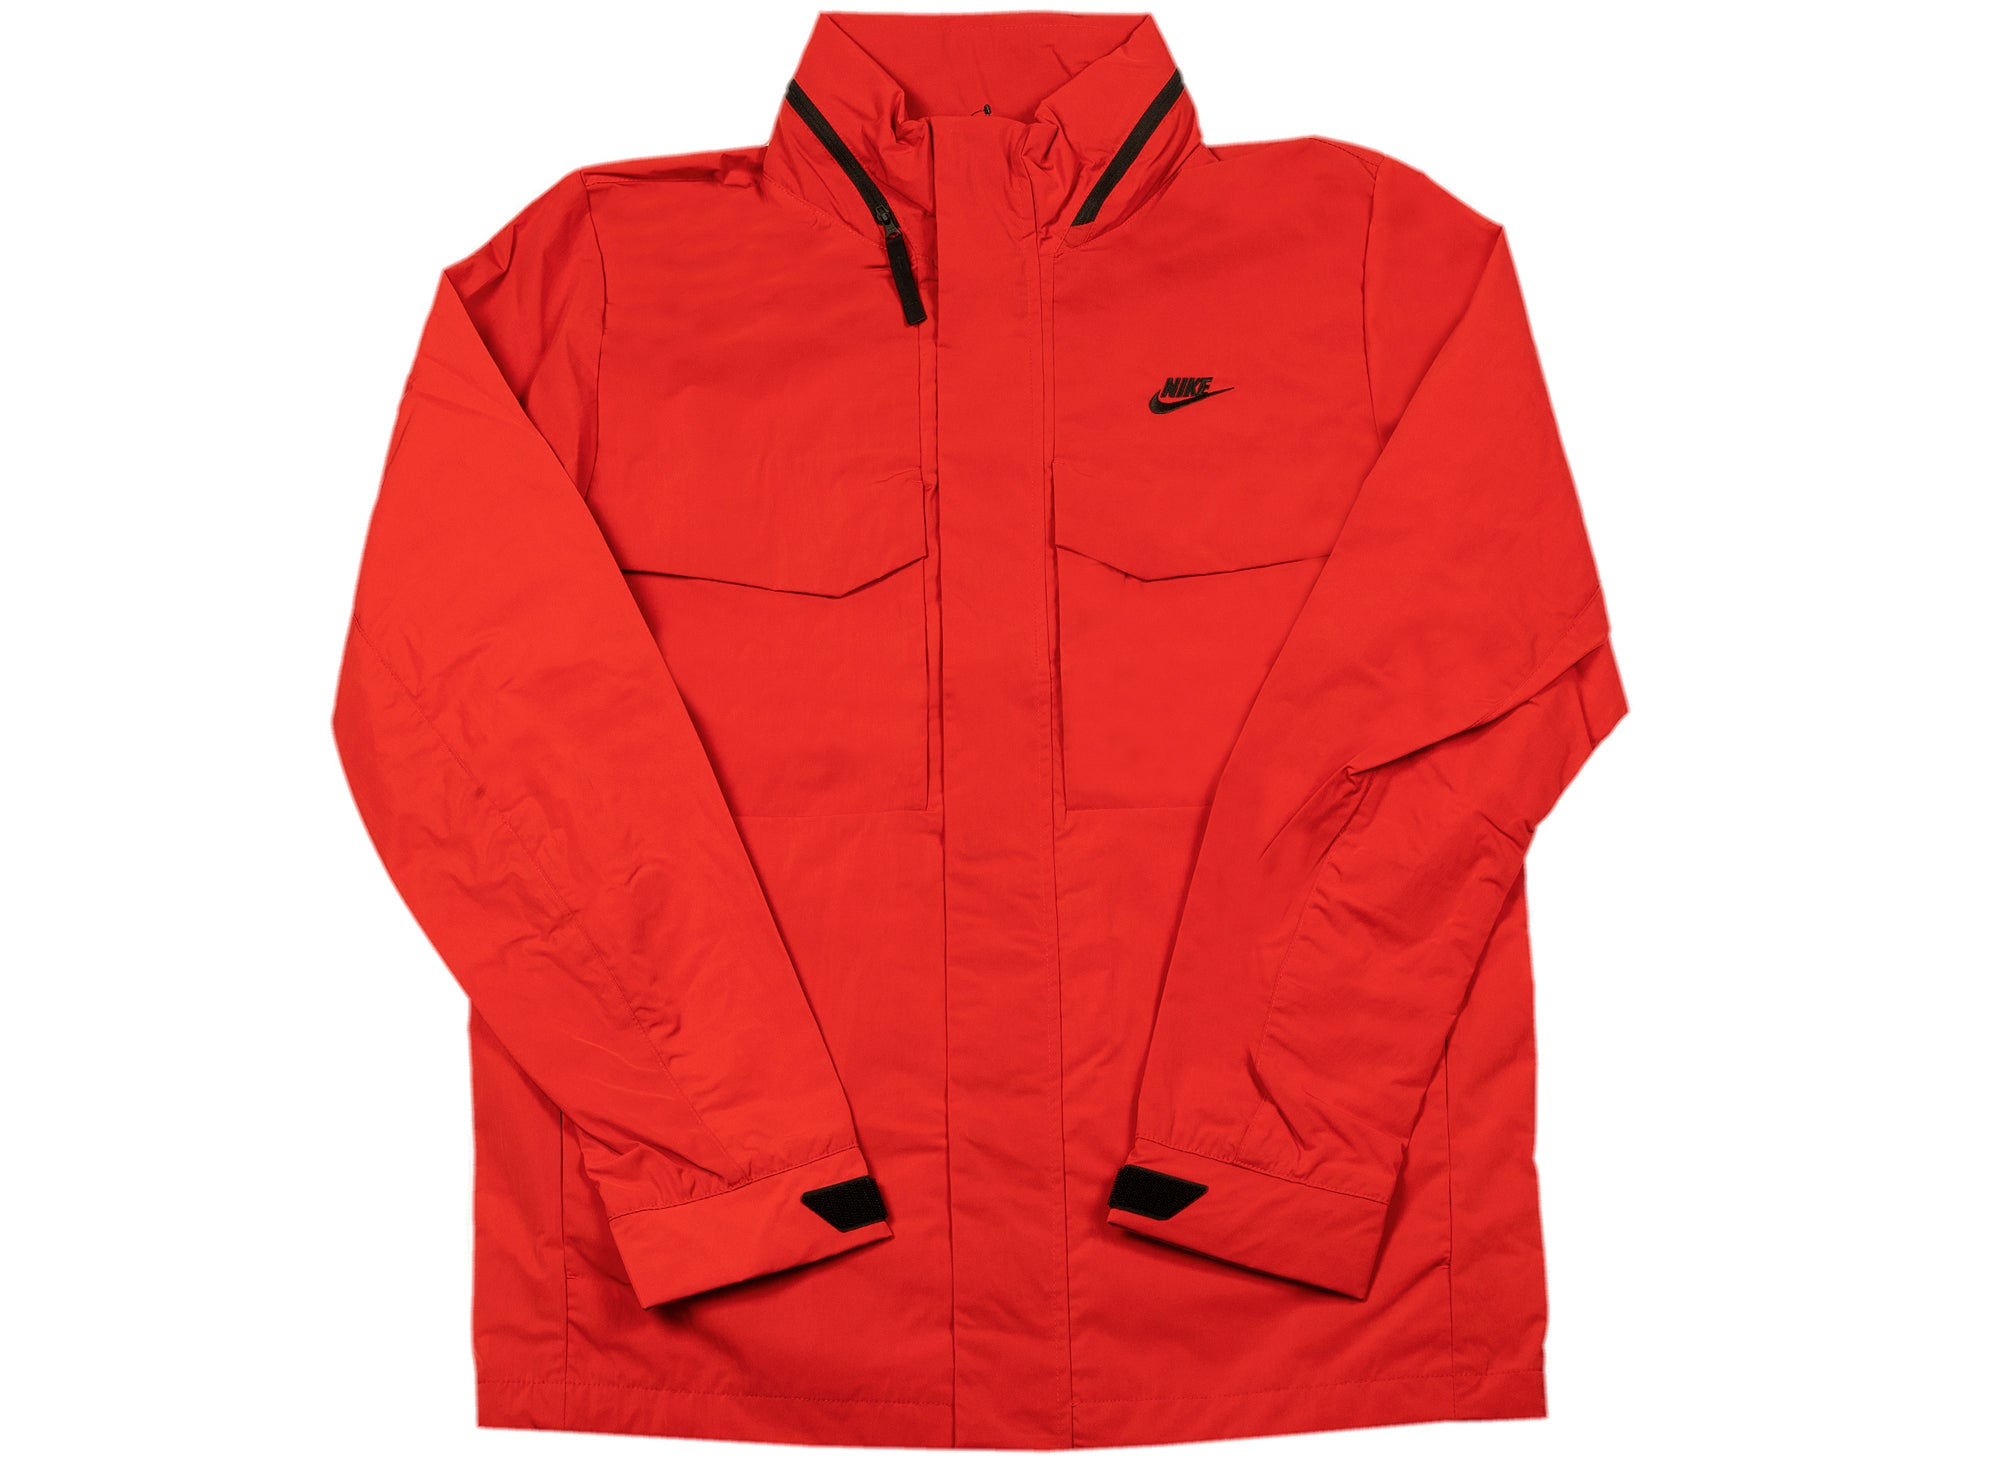 Nike Sportswear M65 Hooded Jacket xld